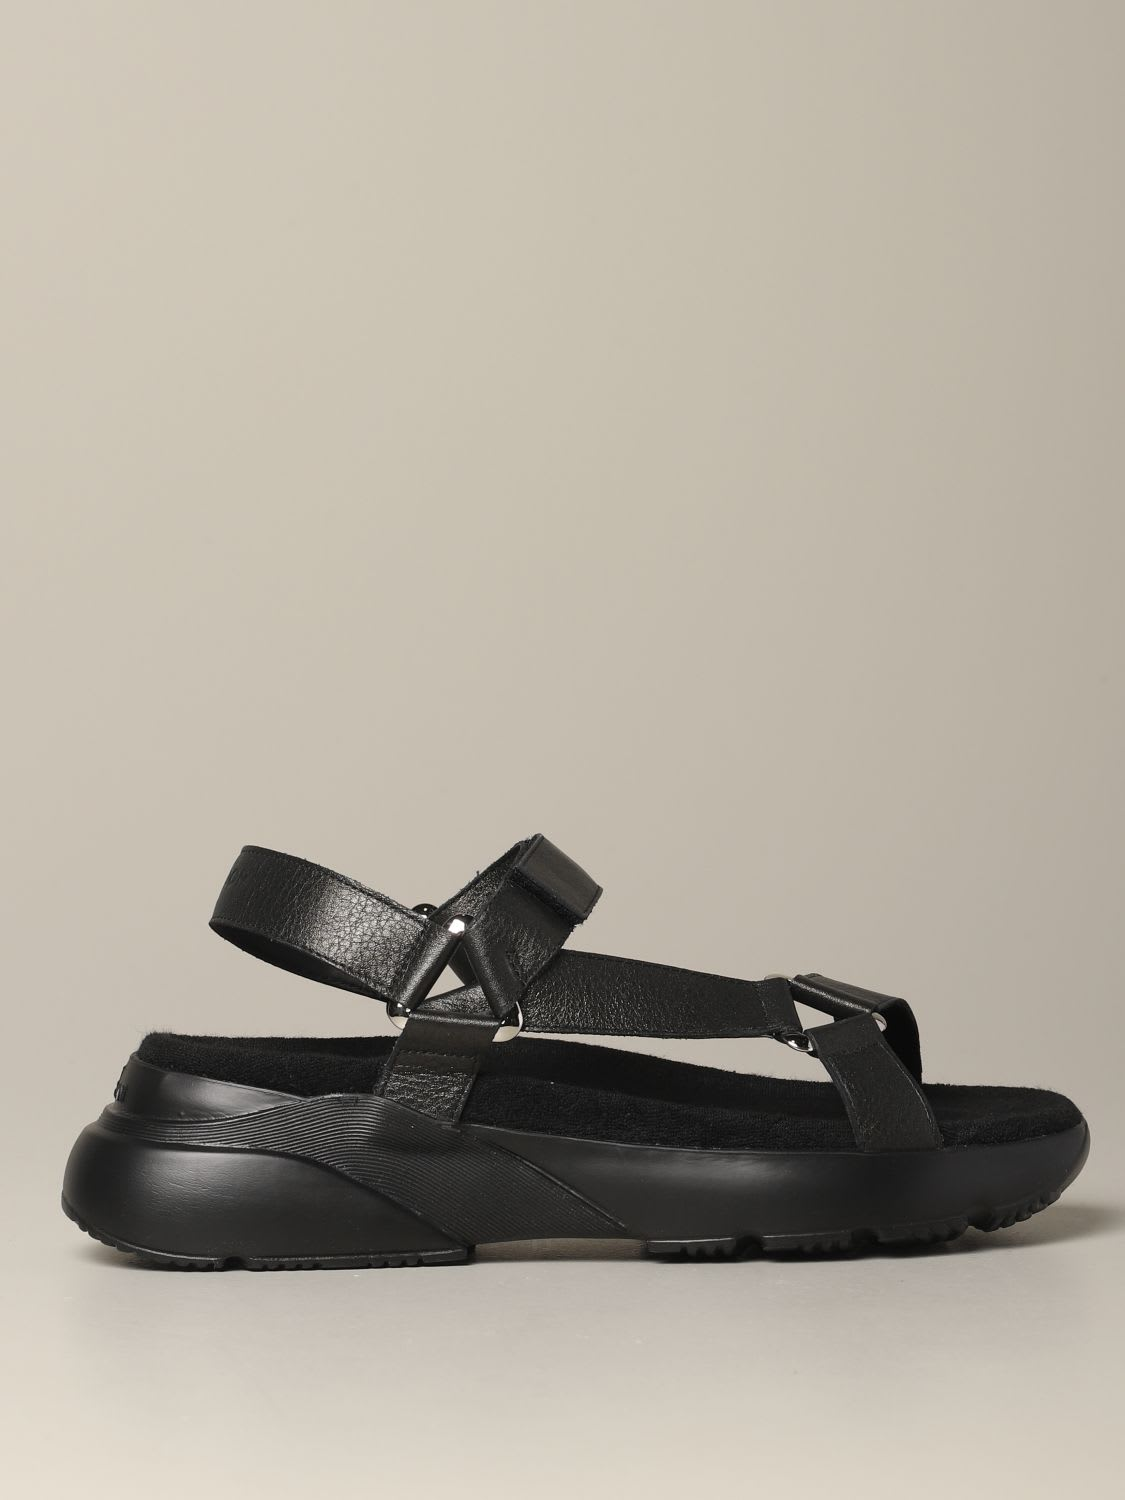 Hogan Sneakers Hogan Leather Sandal With Active One Sole